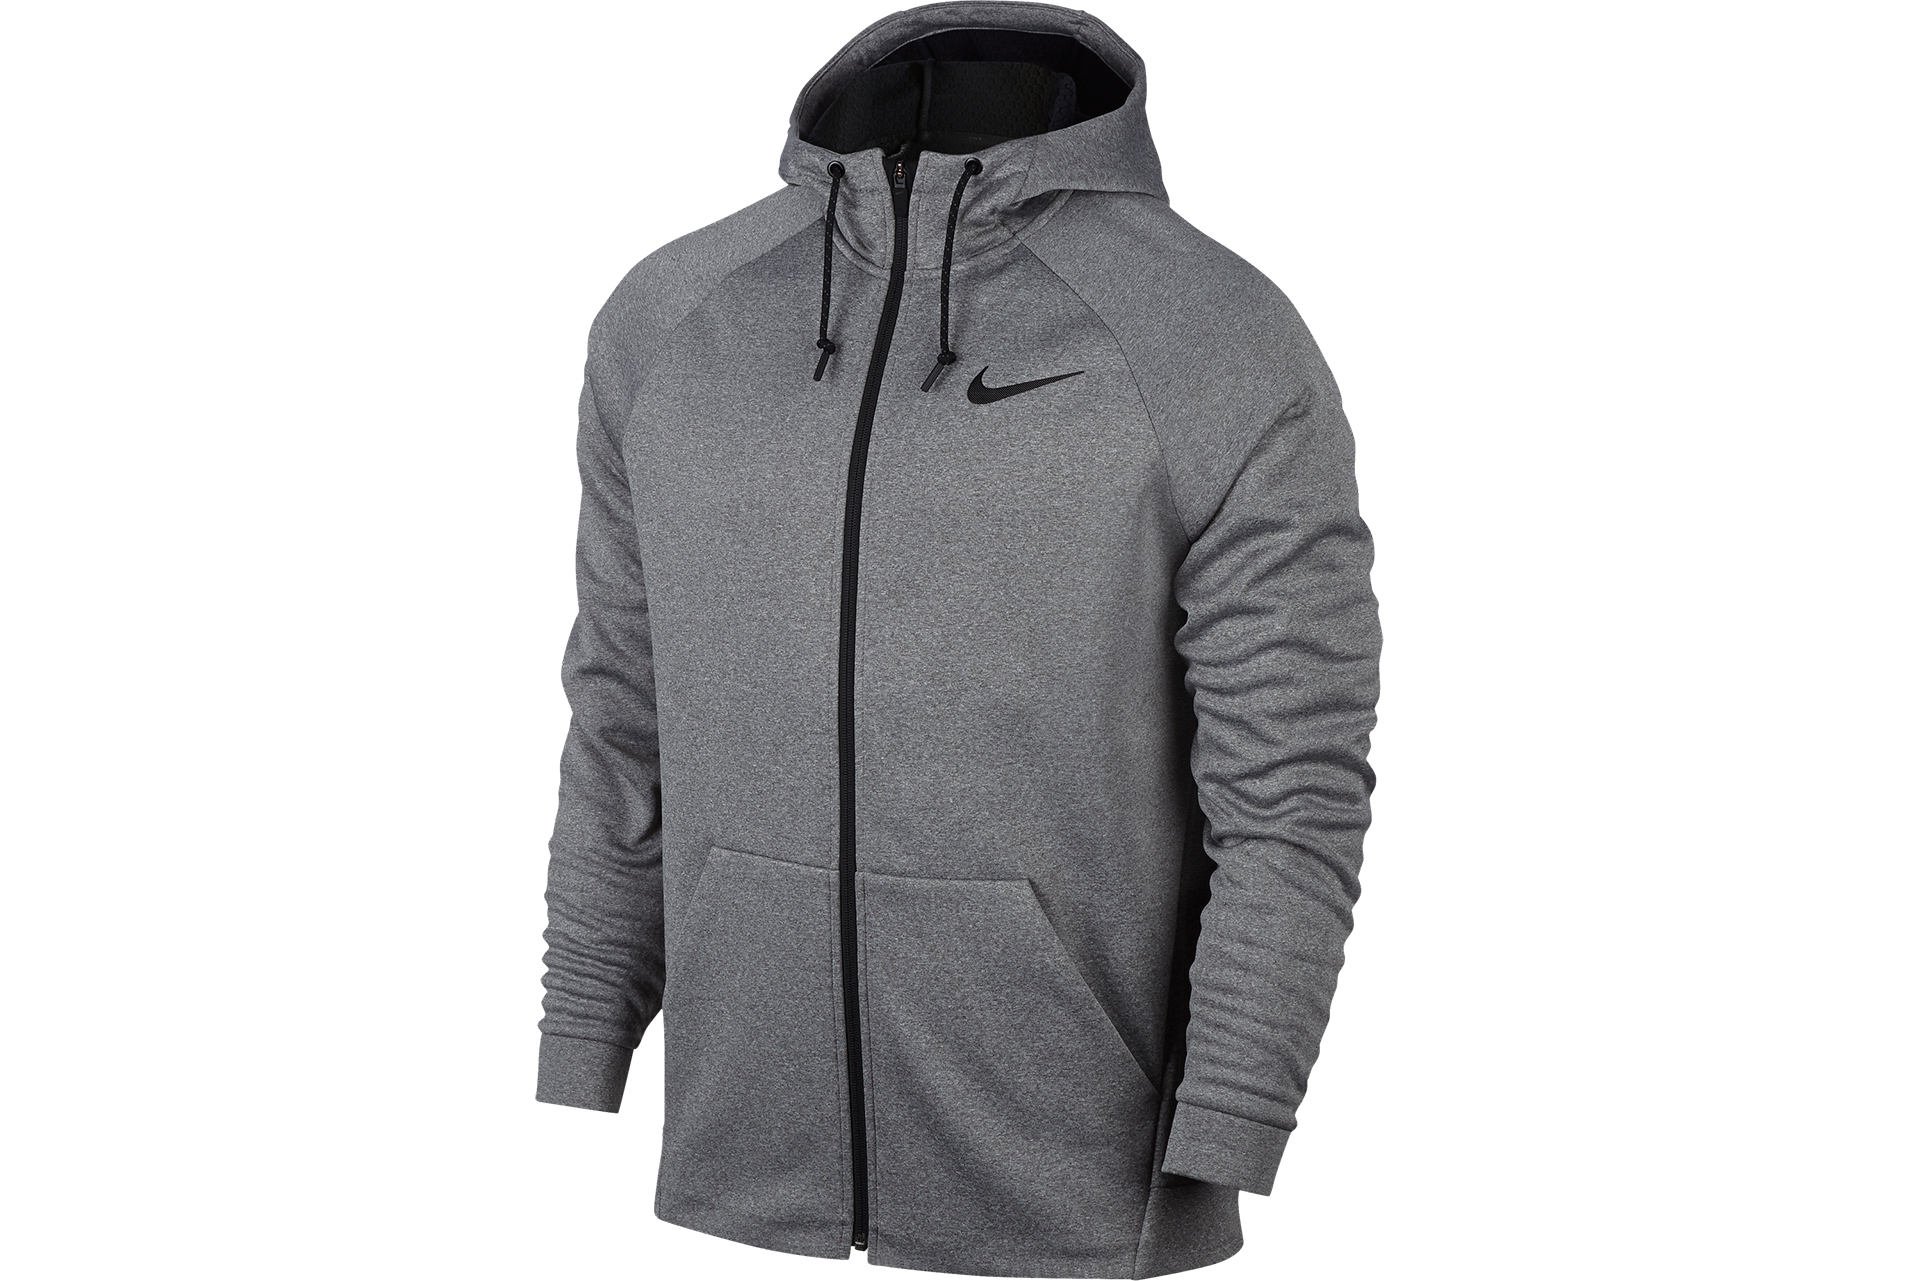 81bd1e4776e3 Nike Therma Sphere Training Jacket Grey